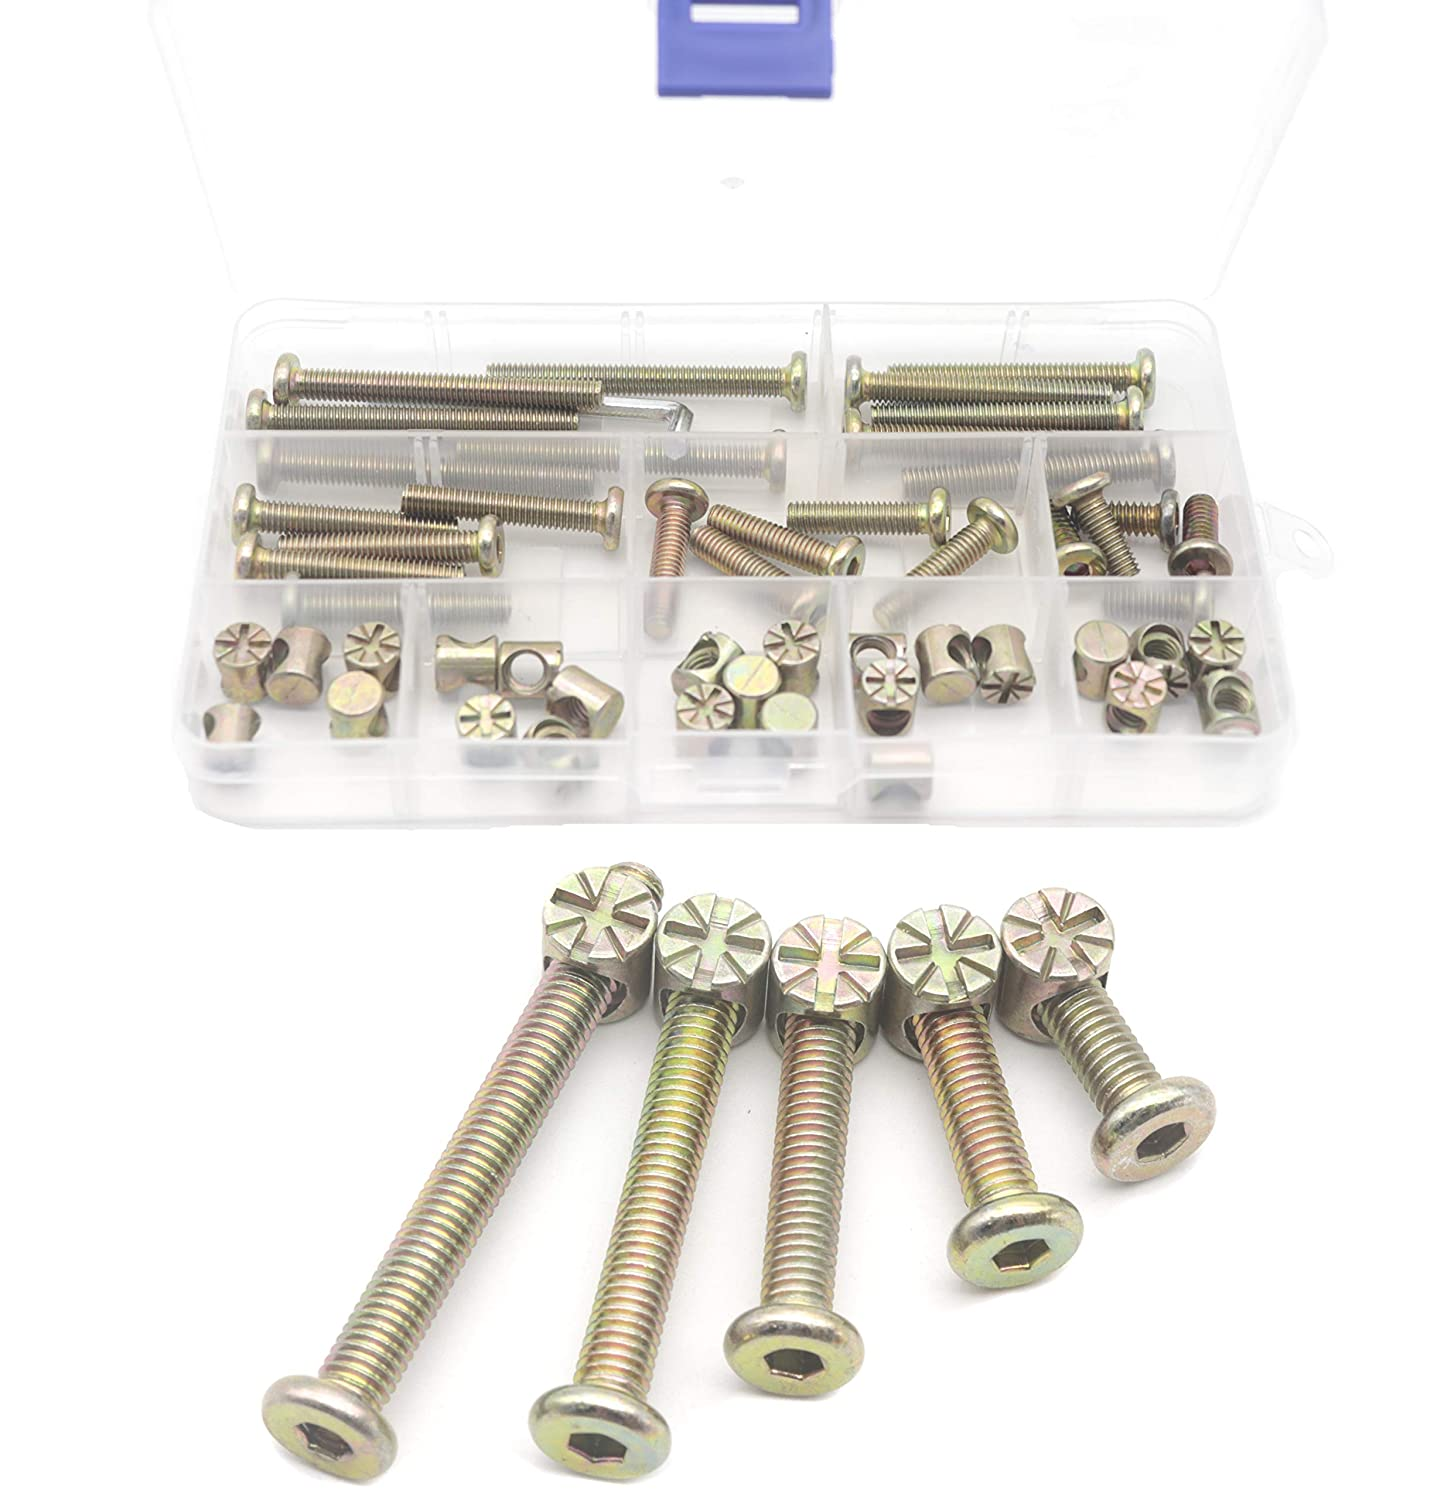 cSeao 50pcs Zinc Plated M6 Socket Cap Bolt Barrel Nuts Assortment Kit for Cot Chairs Chest Furniture Bed M6x15mm//25mm//35mm//45mm//55mm Crib Bolts Replacement Kit